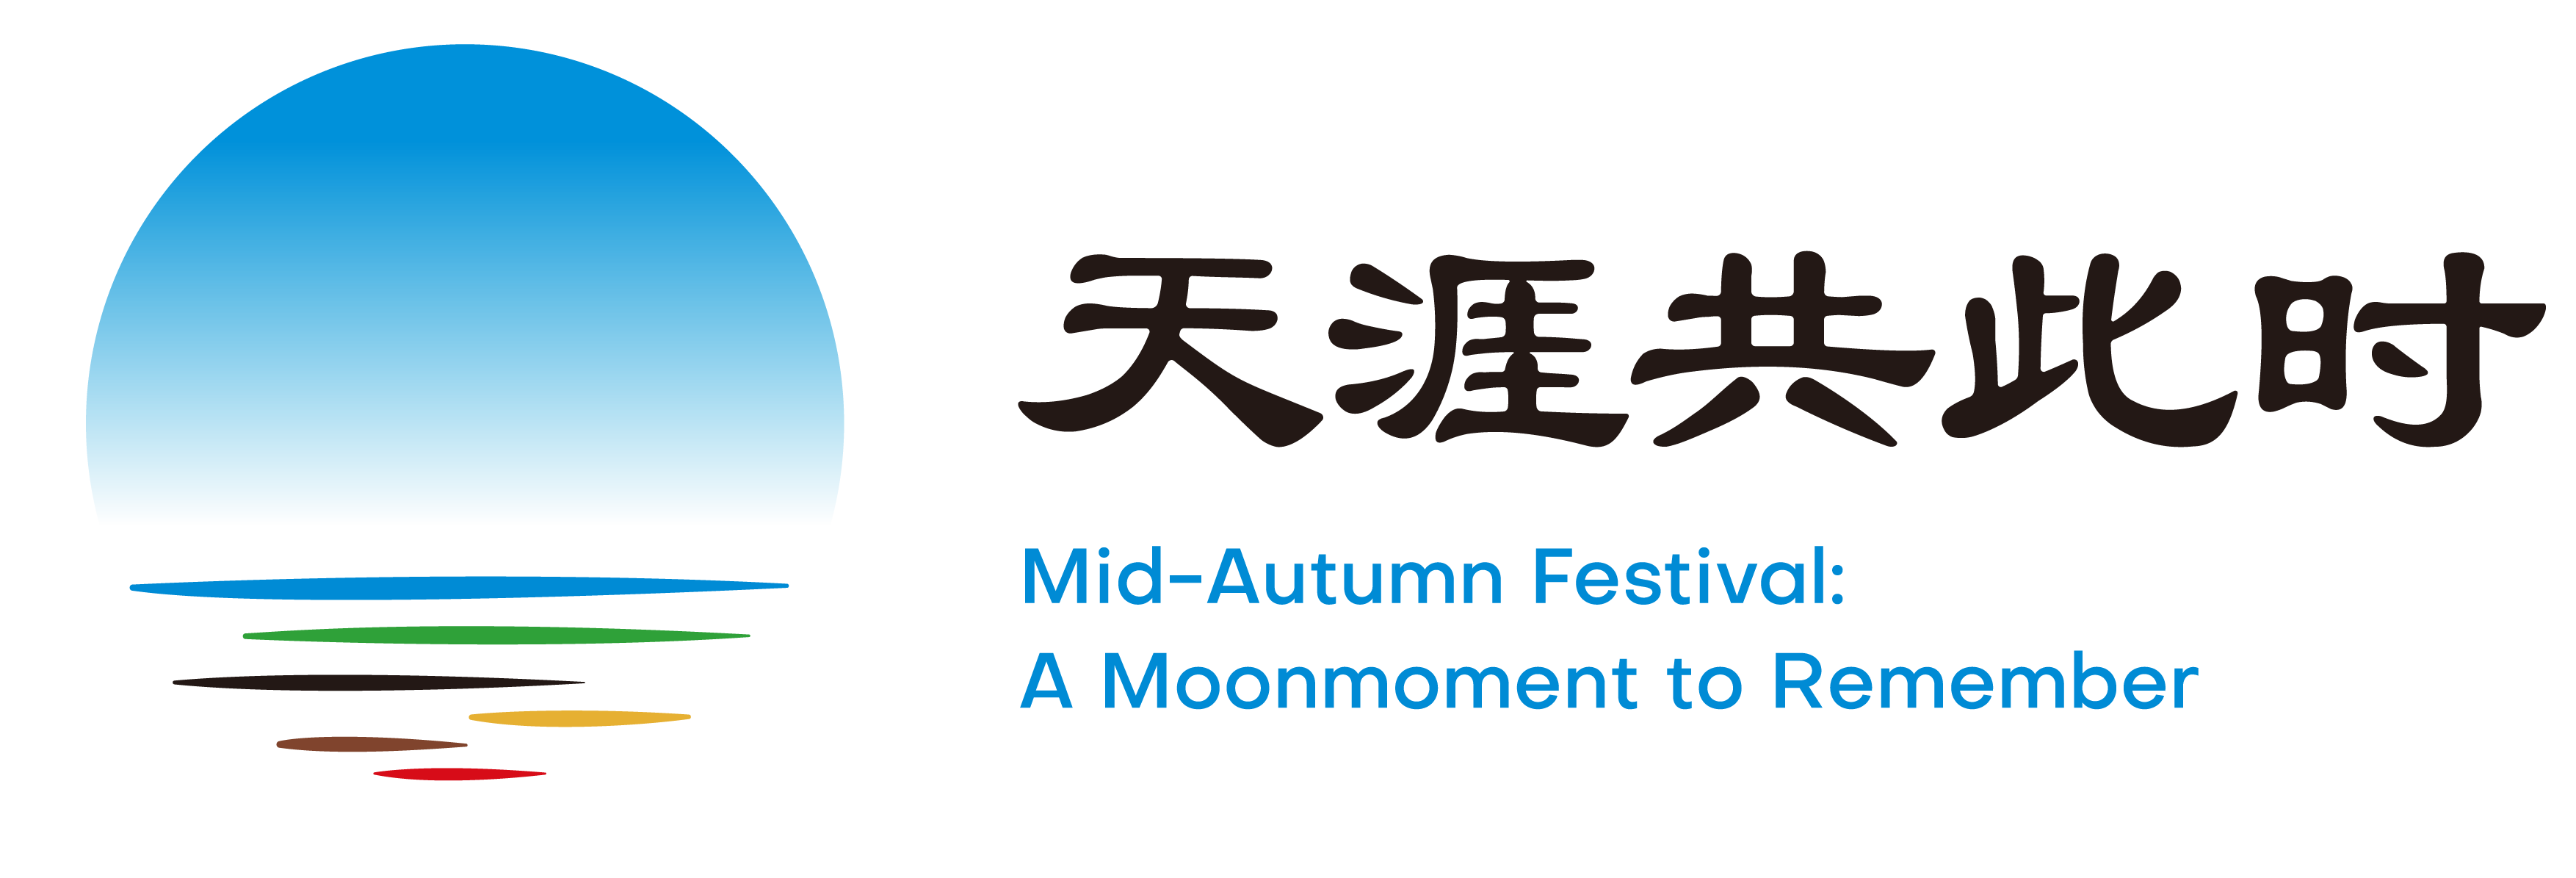 斯德哥尔摩中国文化中心祝大家中秋佳节 幸福安康!China Cultural Center in Stockholm Wishes You a Happy Mid-Autumn Festival!